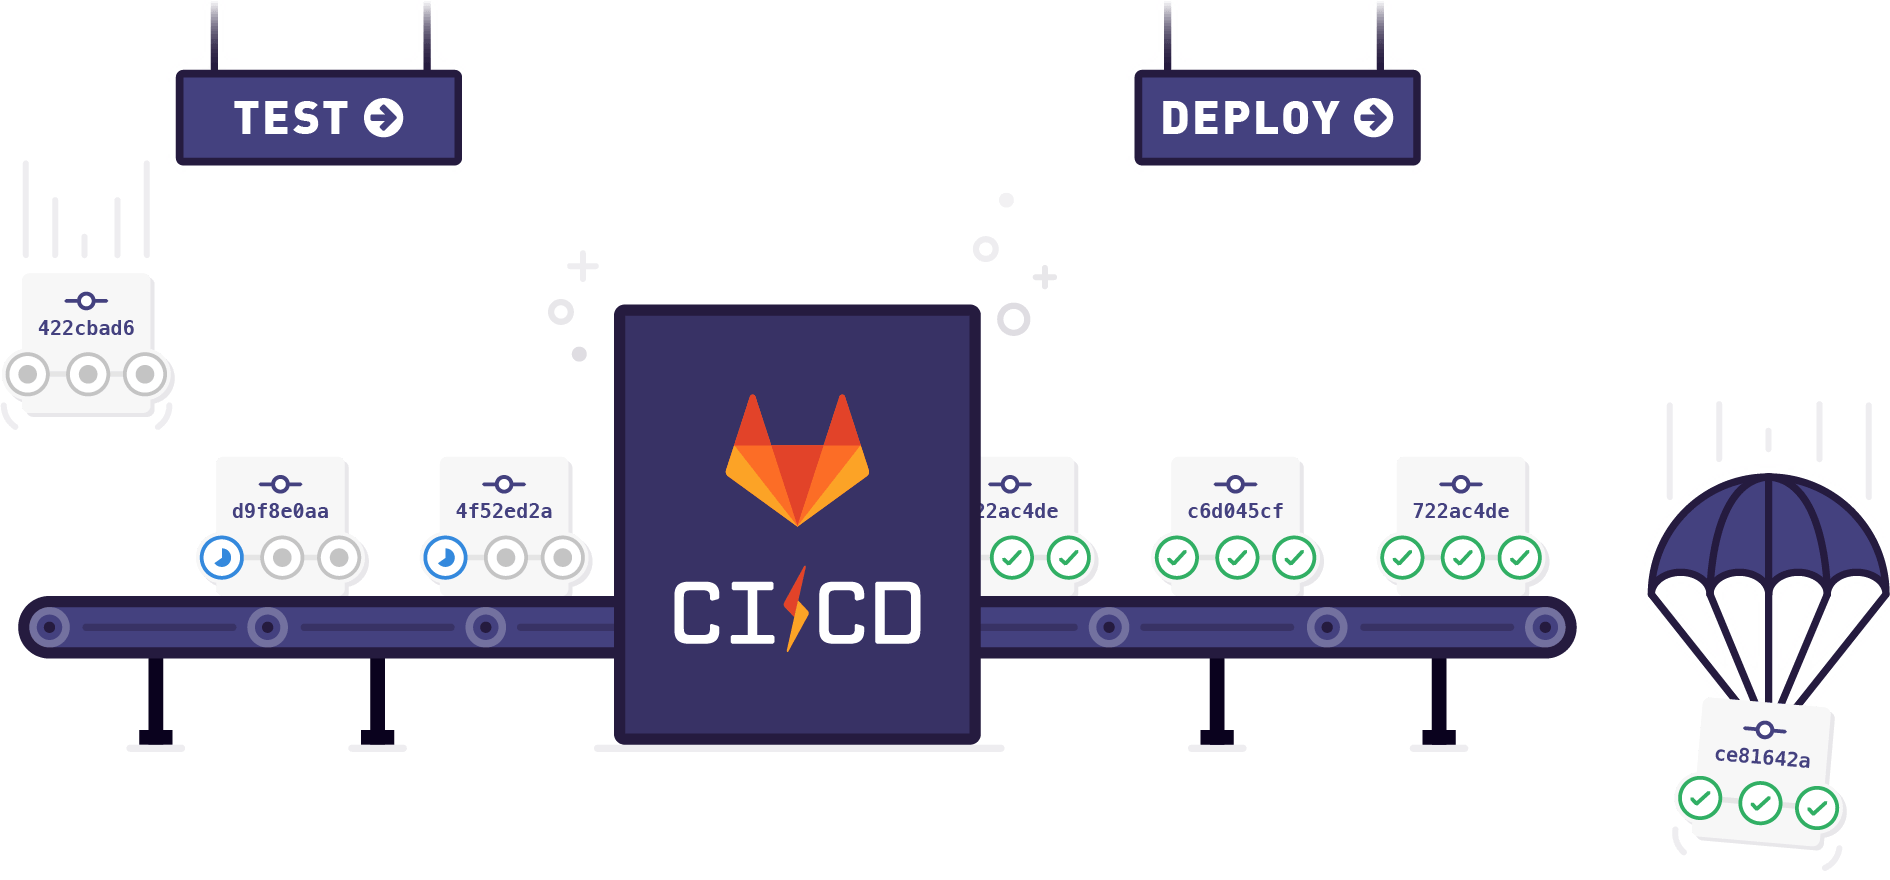 ci-cd-test-deploy-illustration